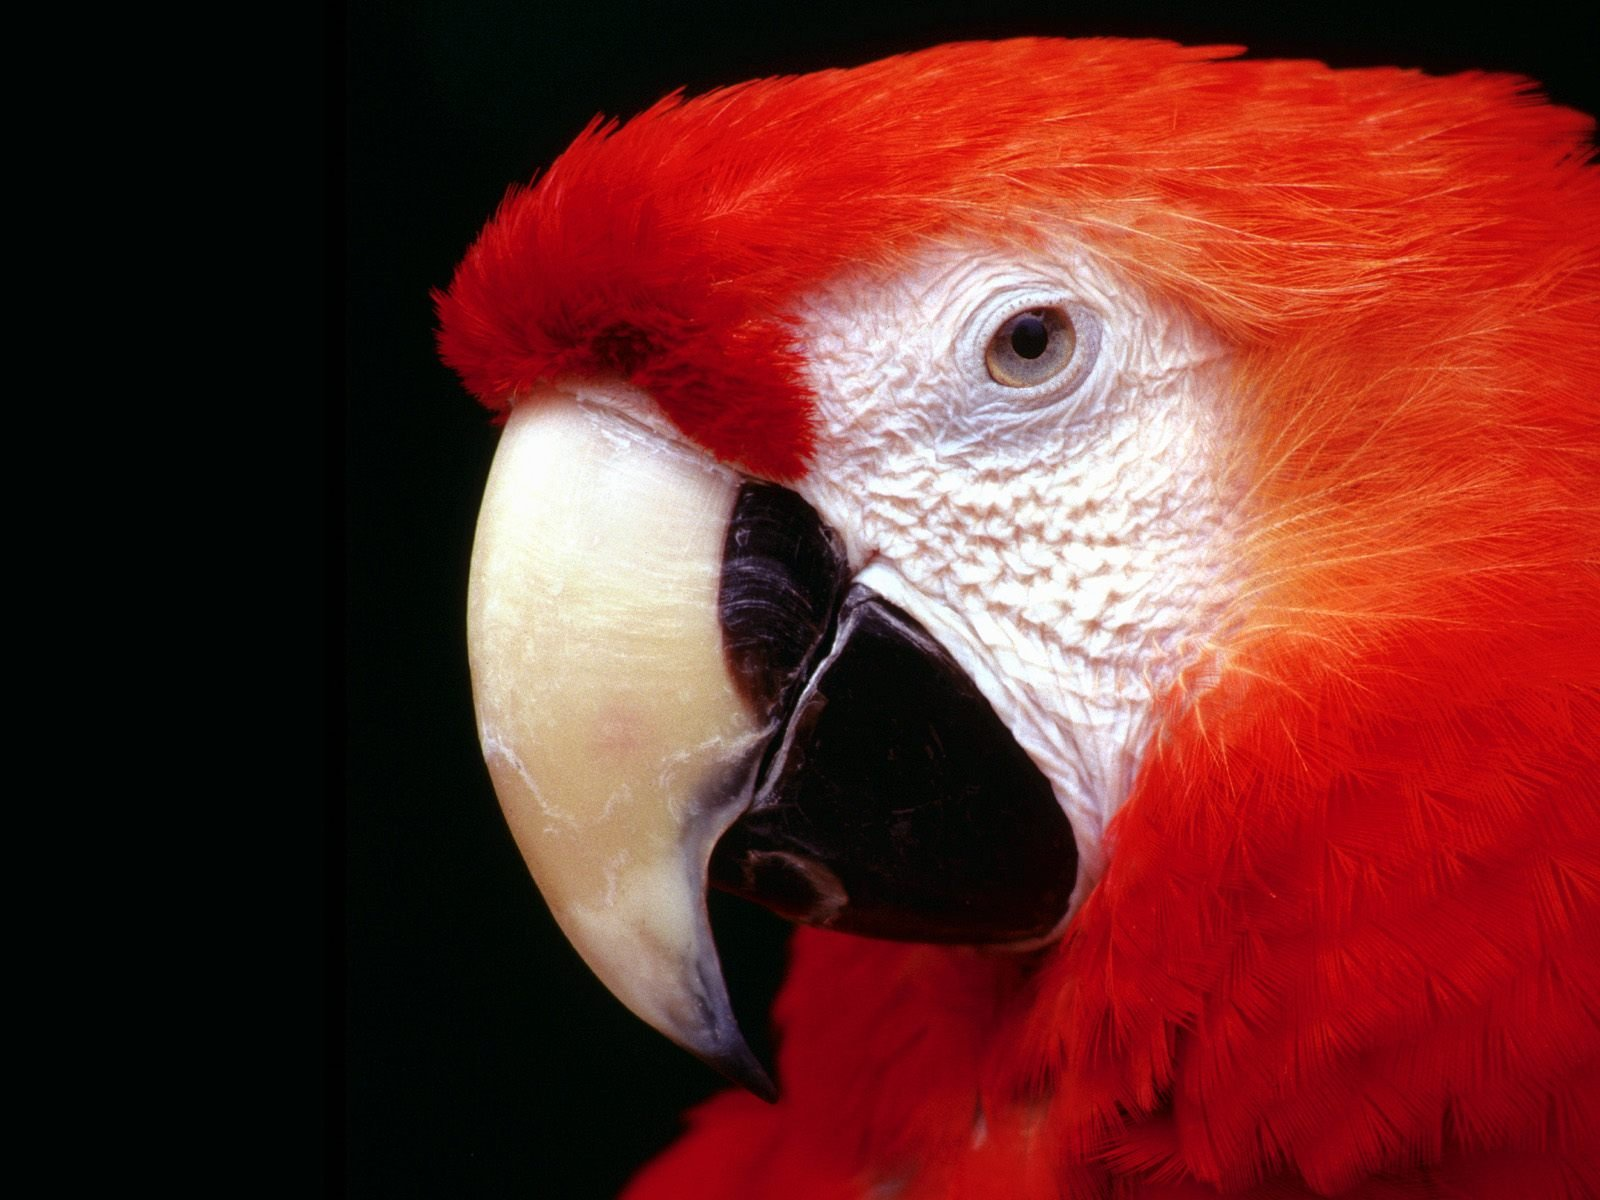 http://3.bp.blogspot.com/-UdAWovKhJH8/TkQa25jaoFI/AAAAAAAAIk4/MJExJZwTaSw/s1600/parrot+HD+high+resolution+wallpapers.jpg